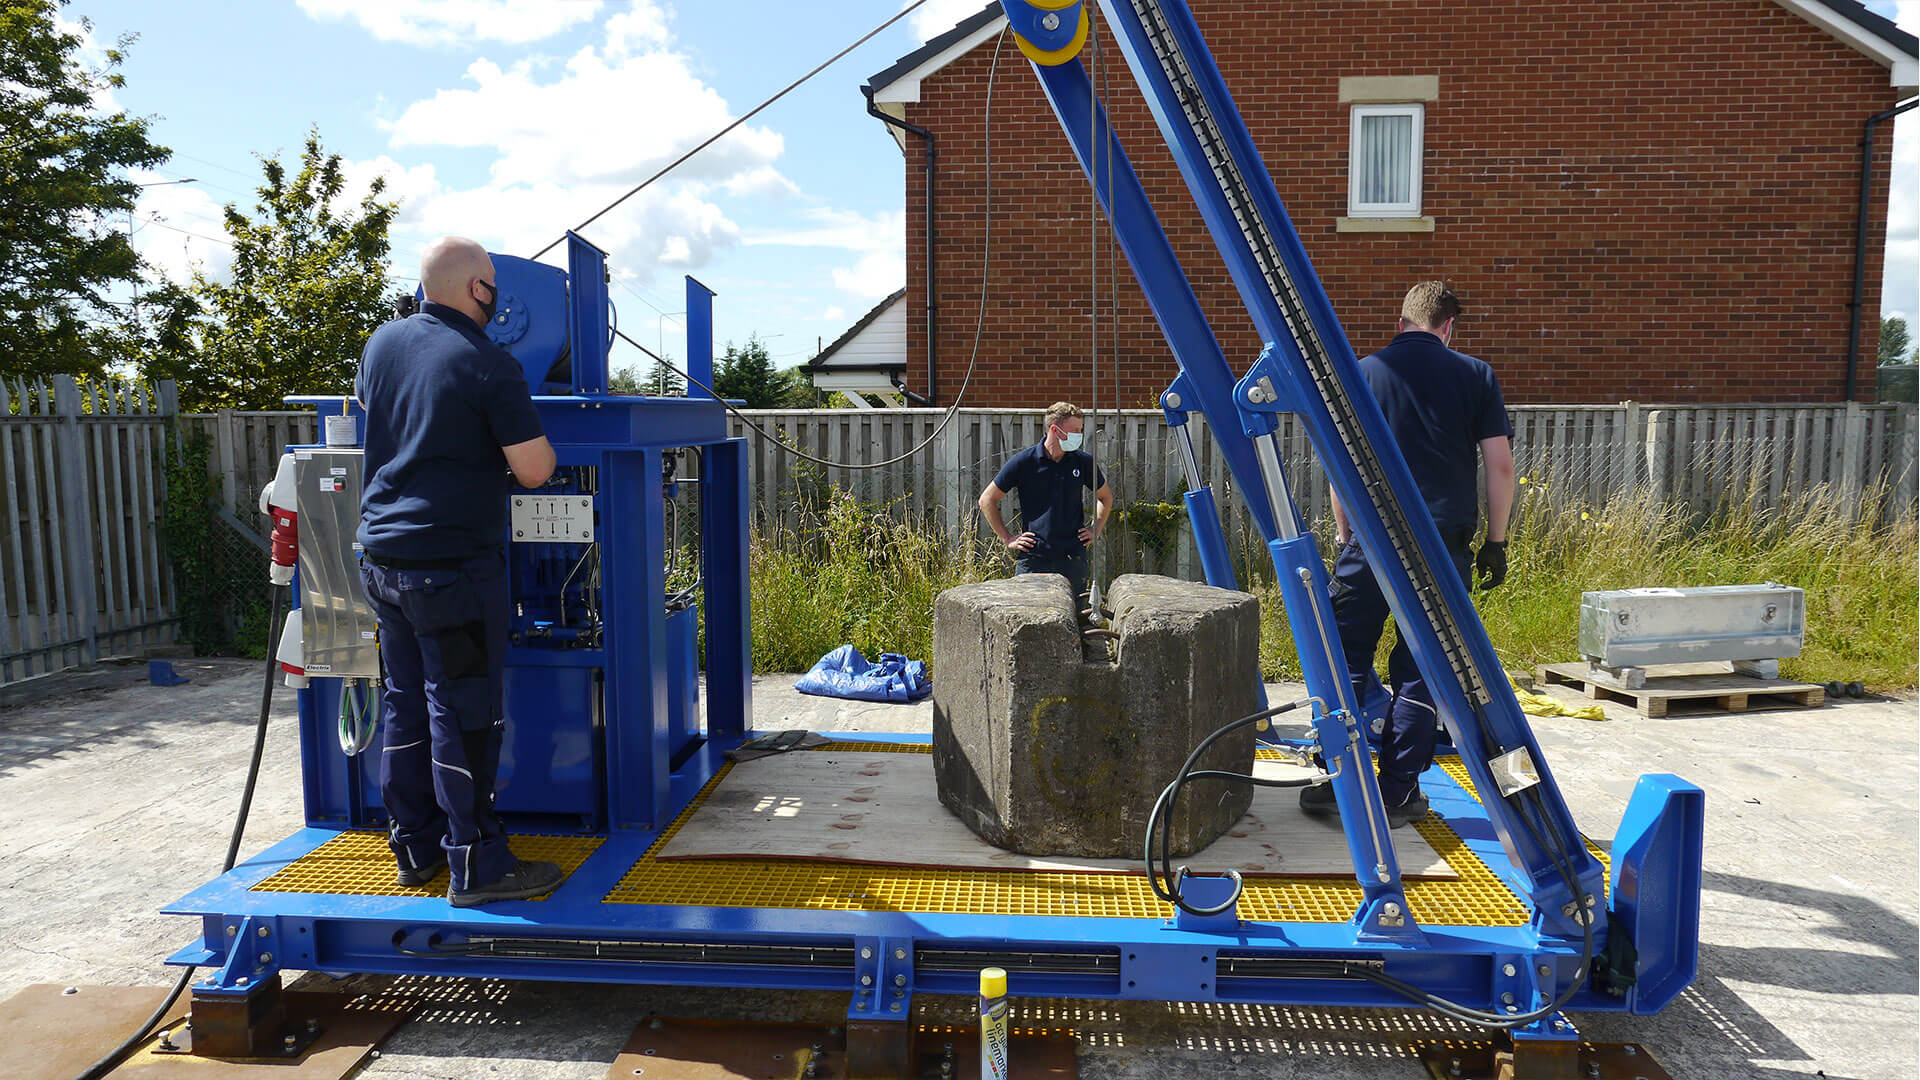 launch and rescue system being tested by SMP team